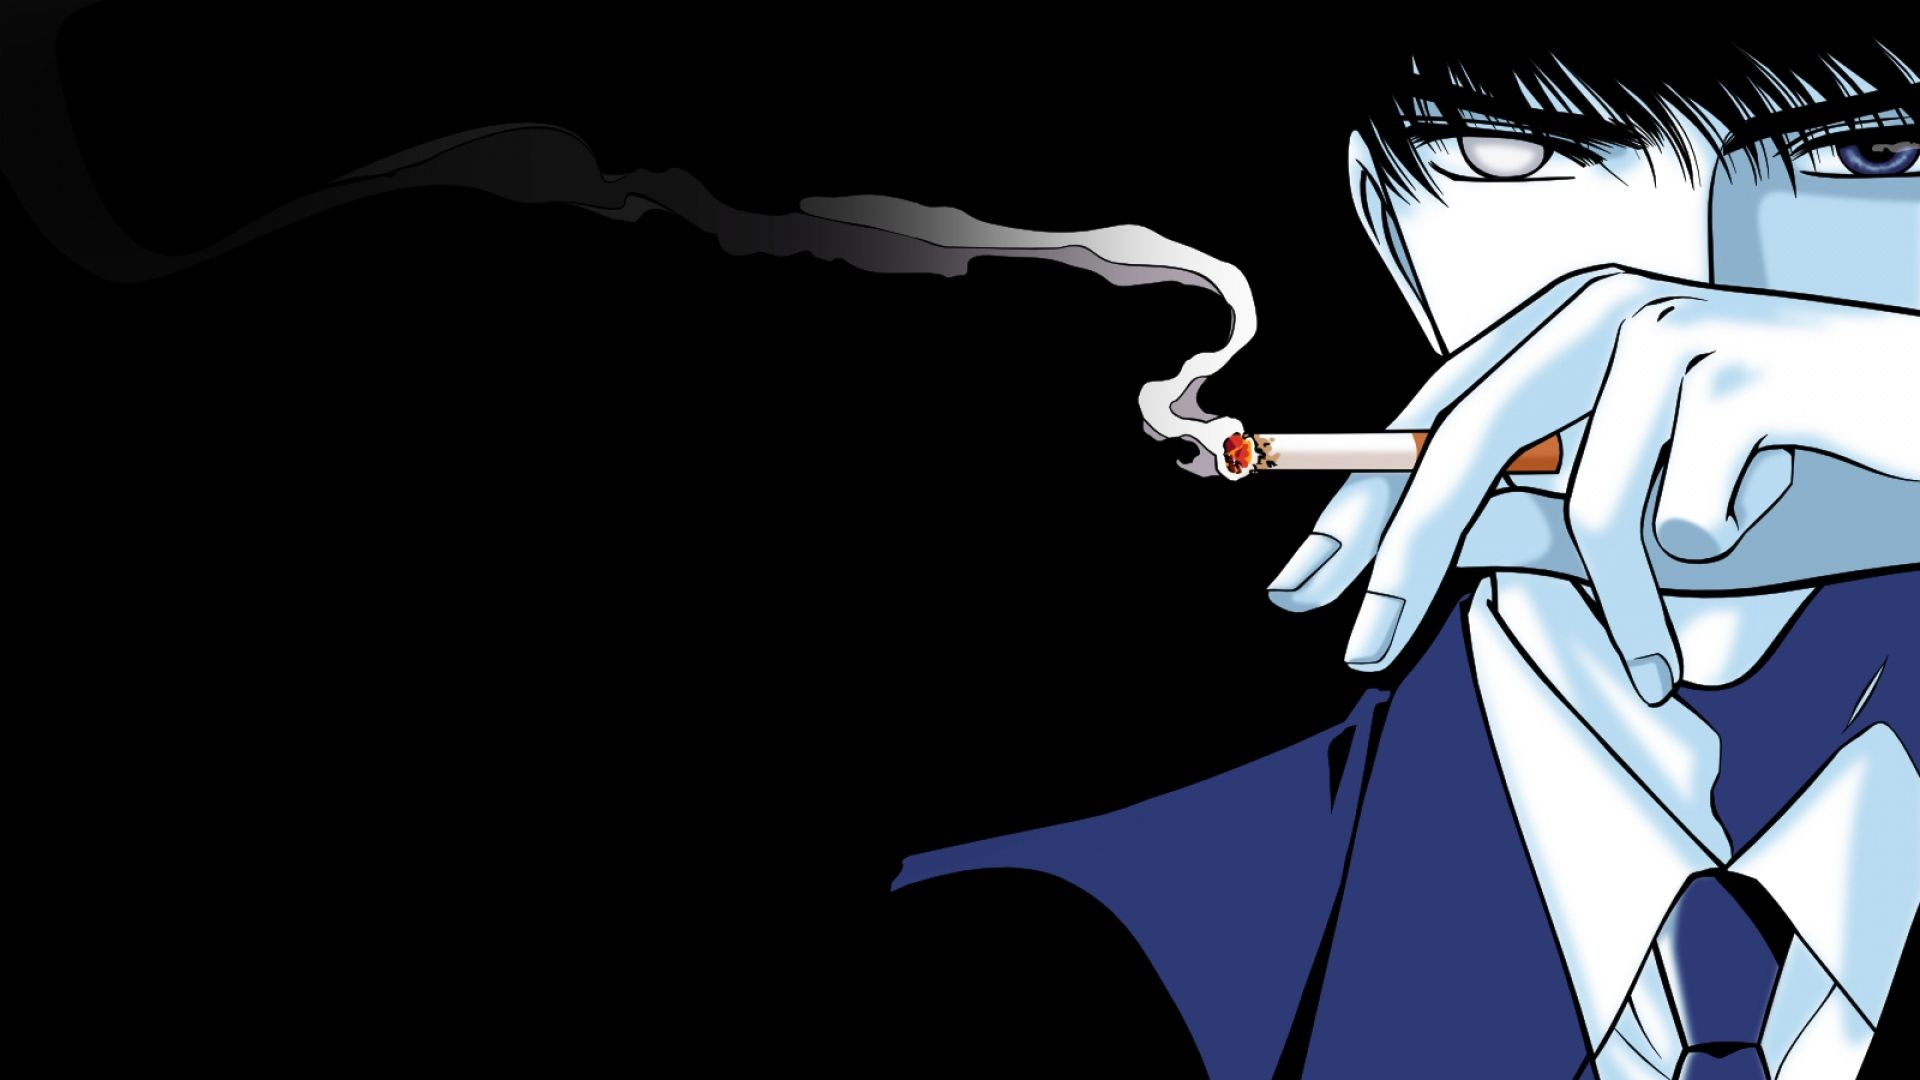 Anime Smoke Wallpapers Top Free Anime Smoke Backgrounds Wallpaperaccess